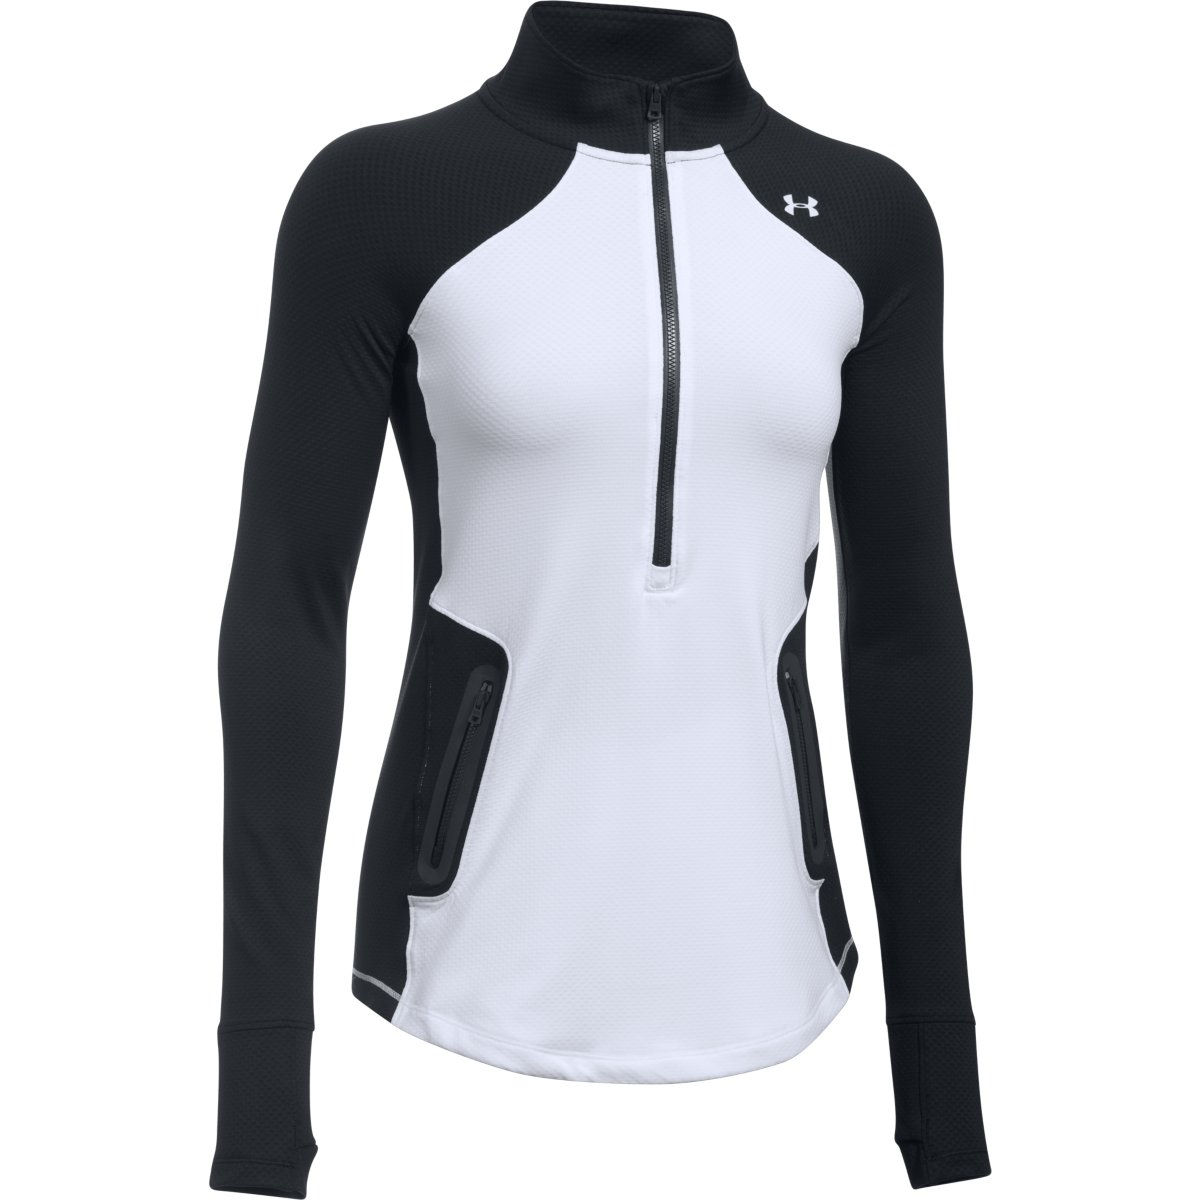 under armour jackets women s. under armour women\u0027s coldgear reactor 1/2 zip gym top jackets women s